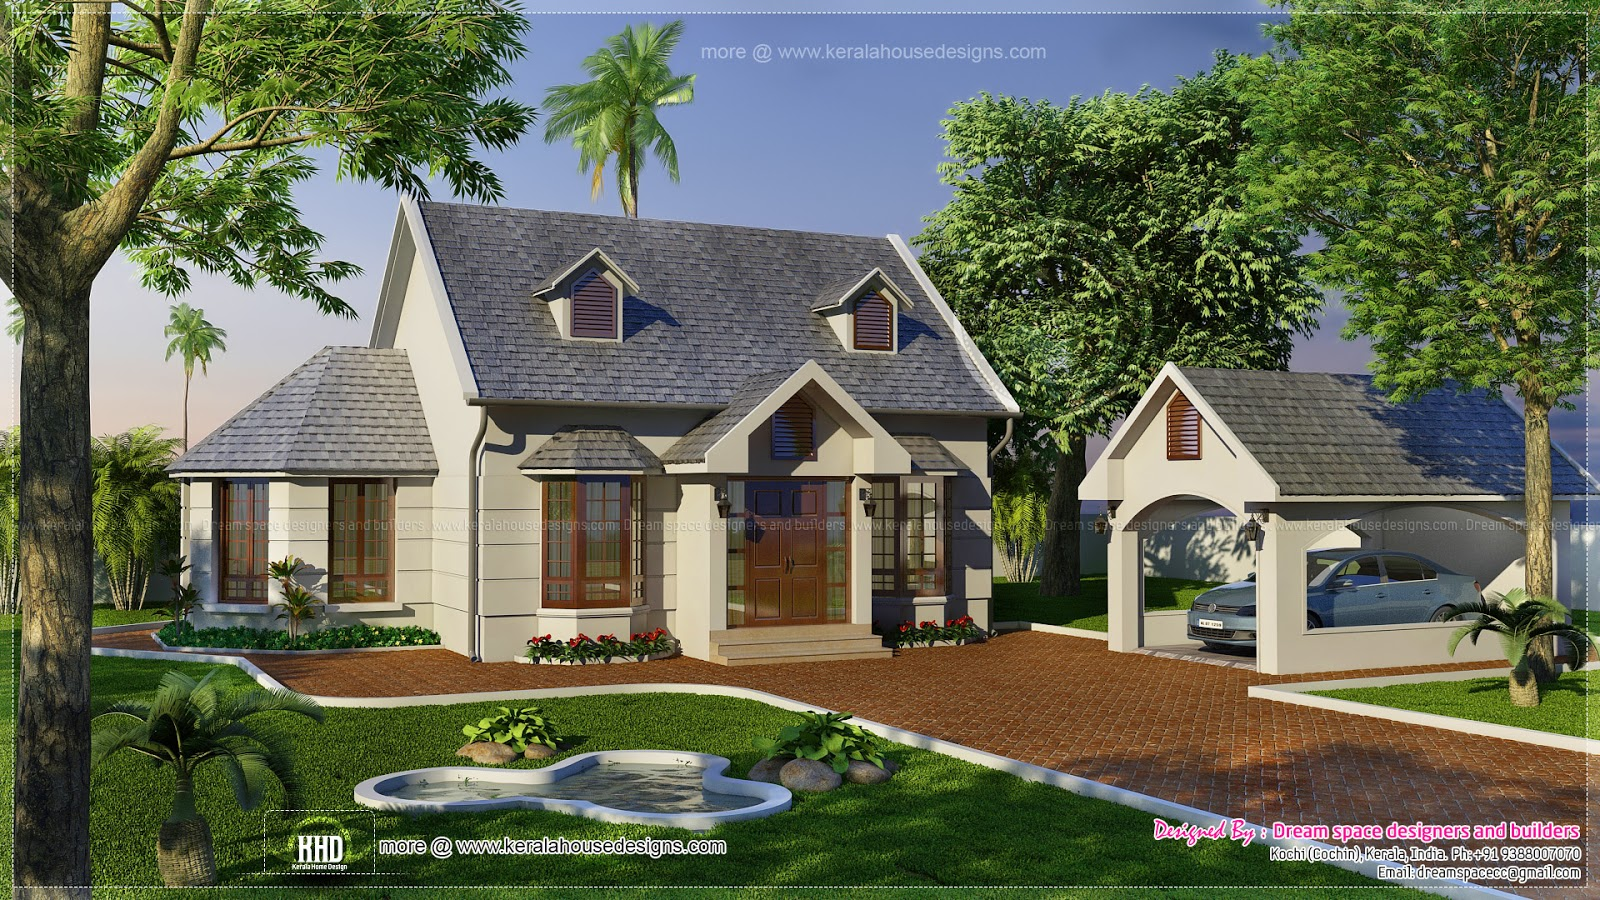 Vacation garden home design in 1200 home kerala for Home designs and plans